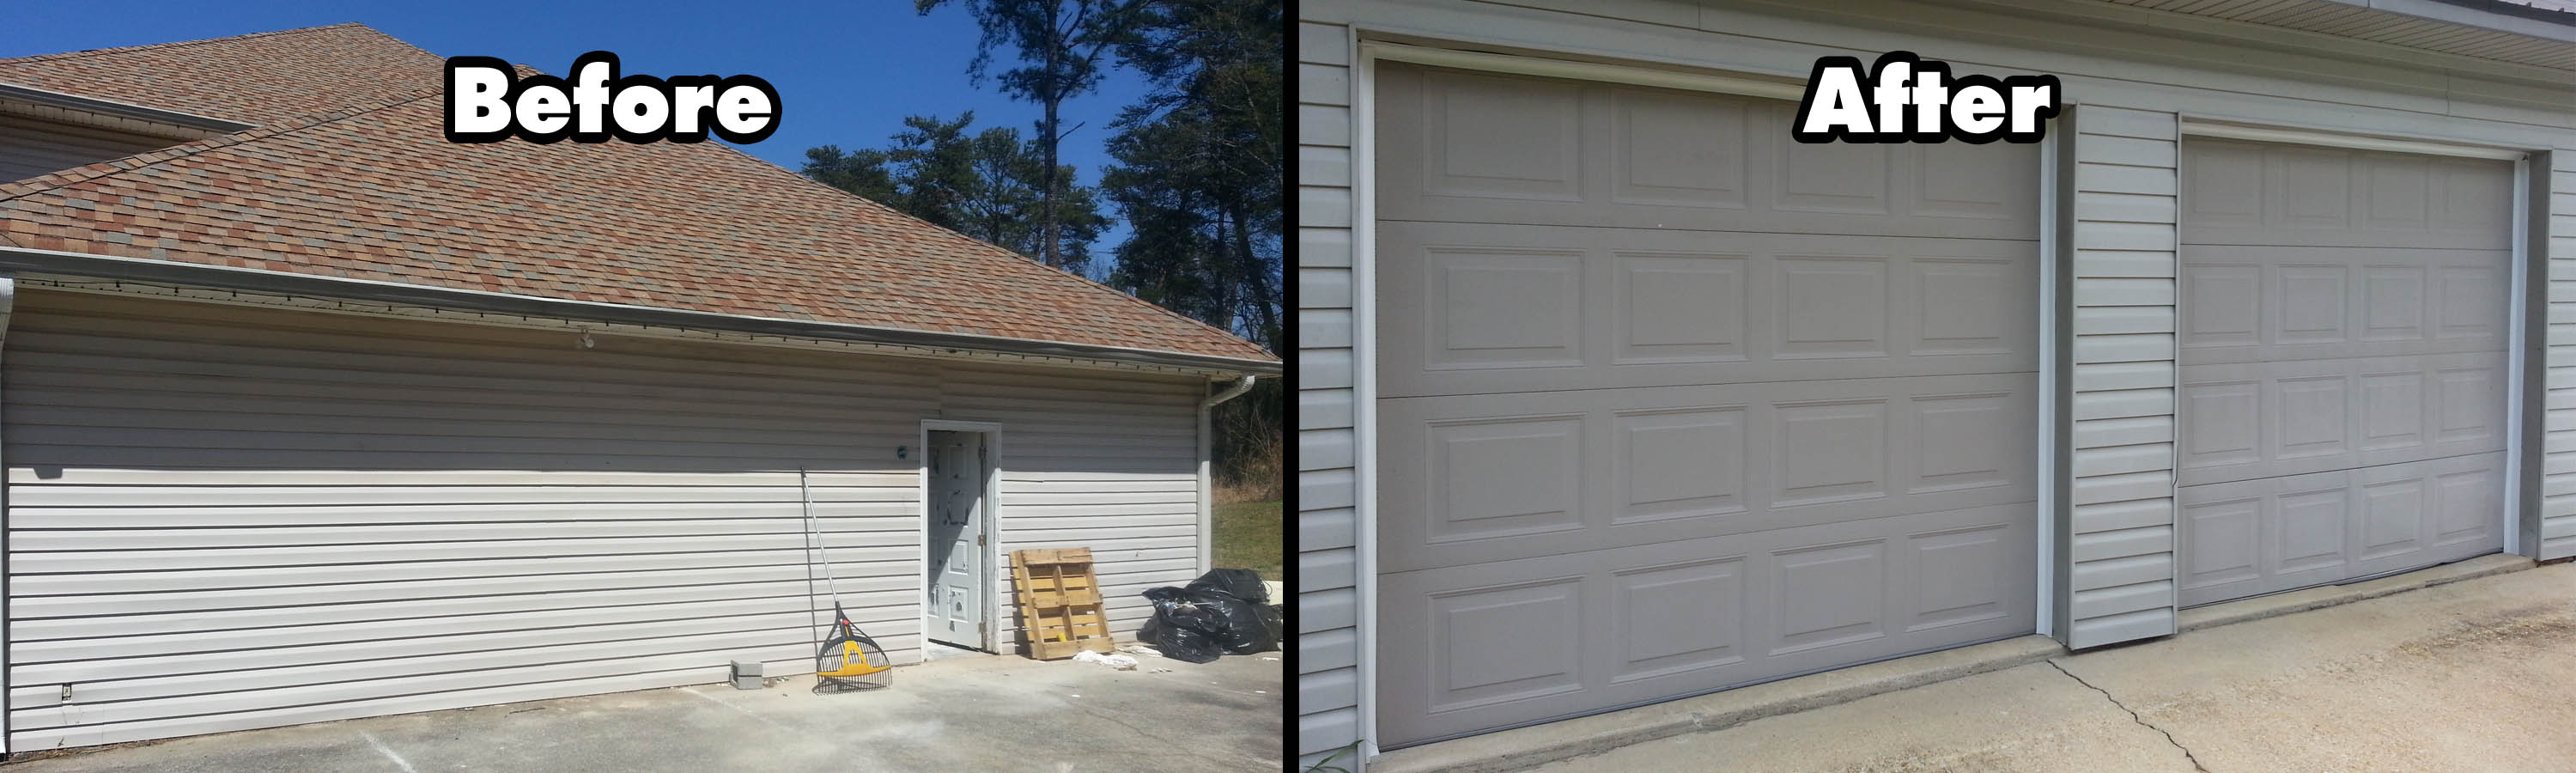 Garage doors gallery prestige garage door services serving 7 rubansaba